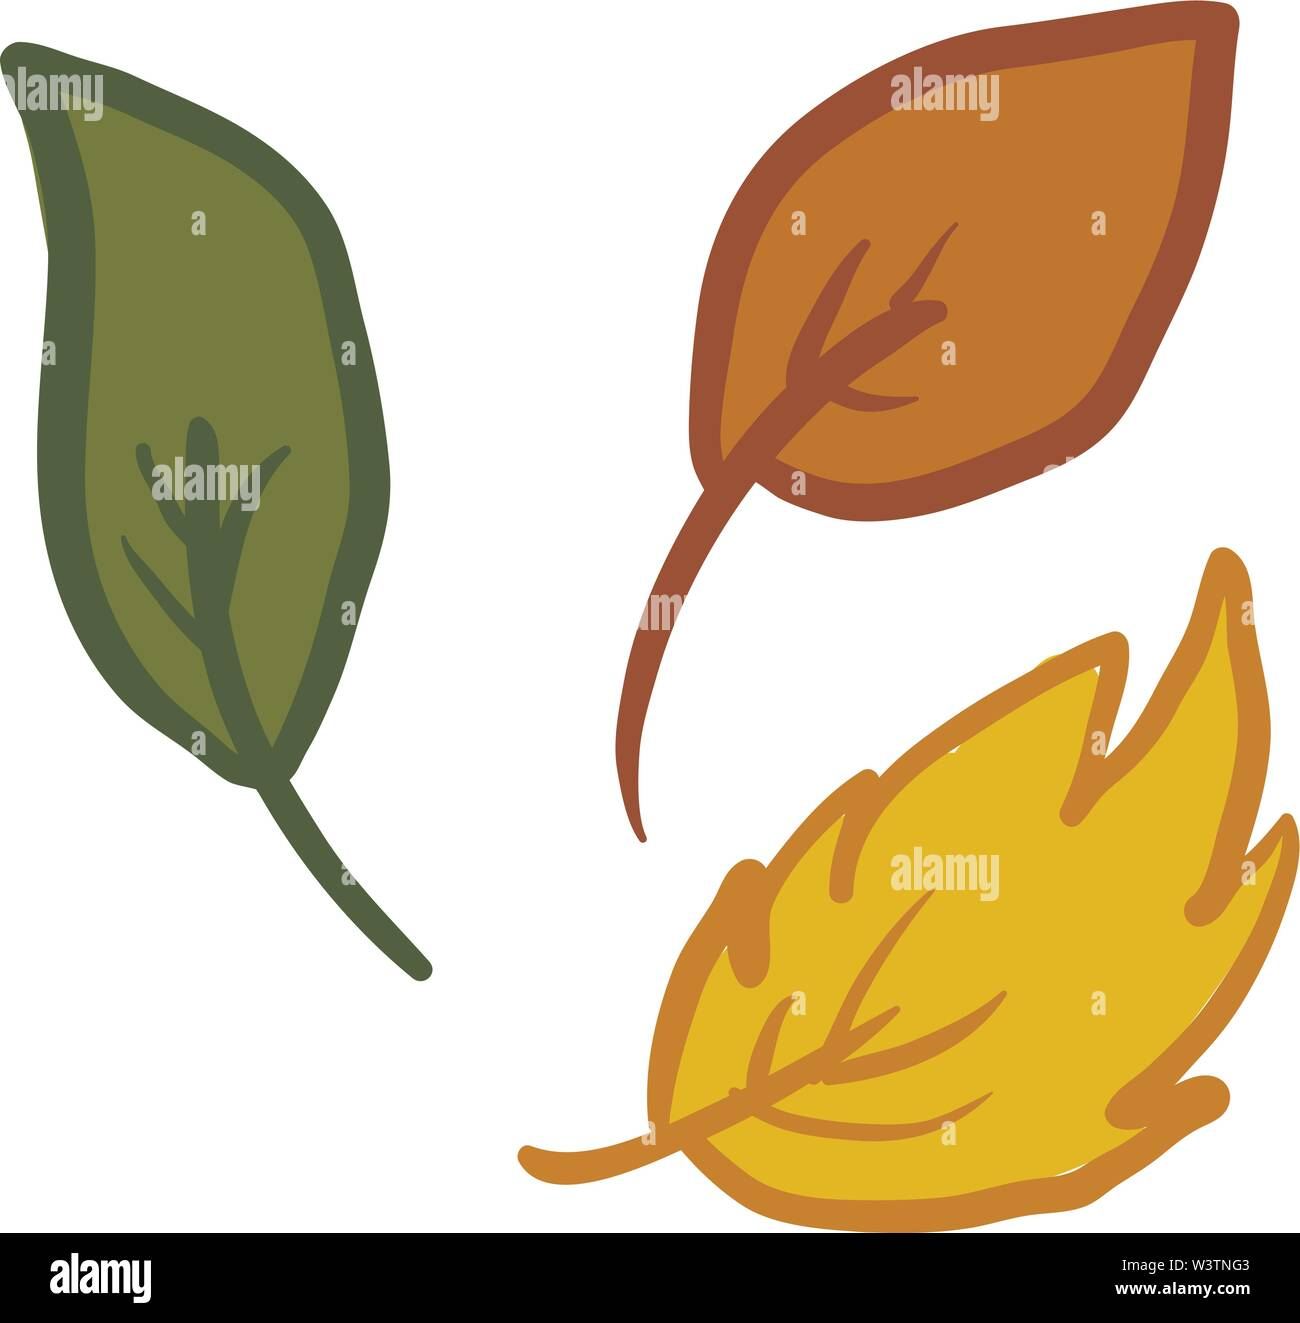 Leaf fall, illustration, vector on white background. - Stock Image